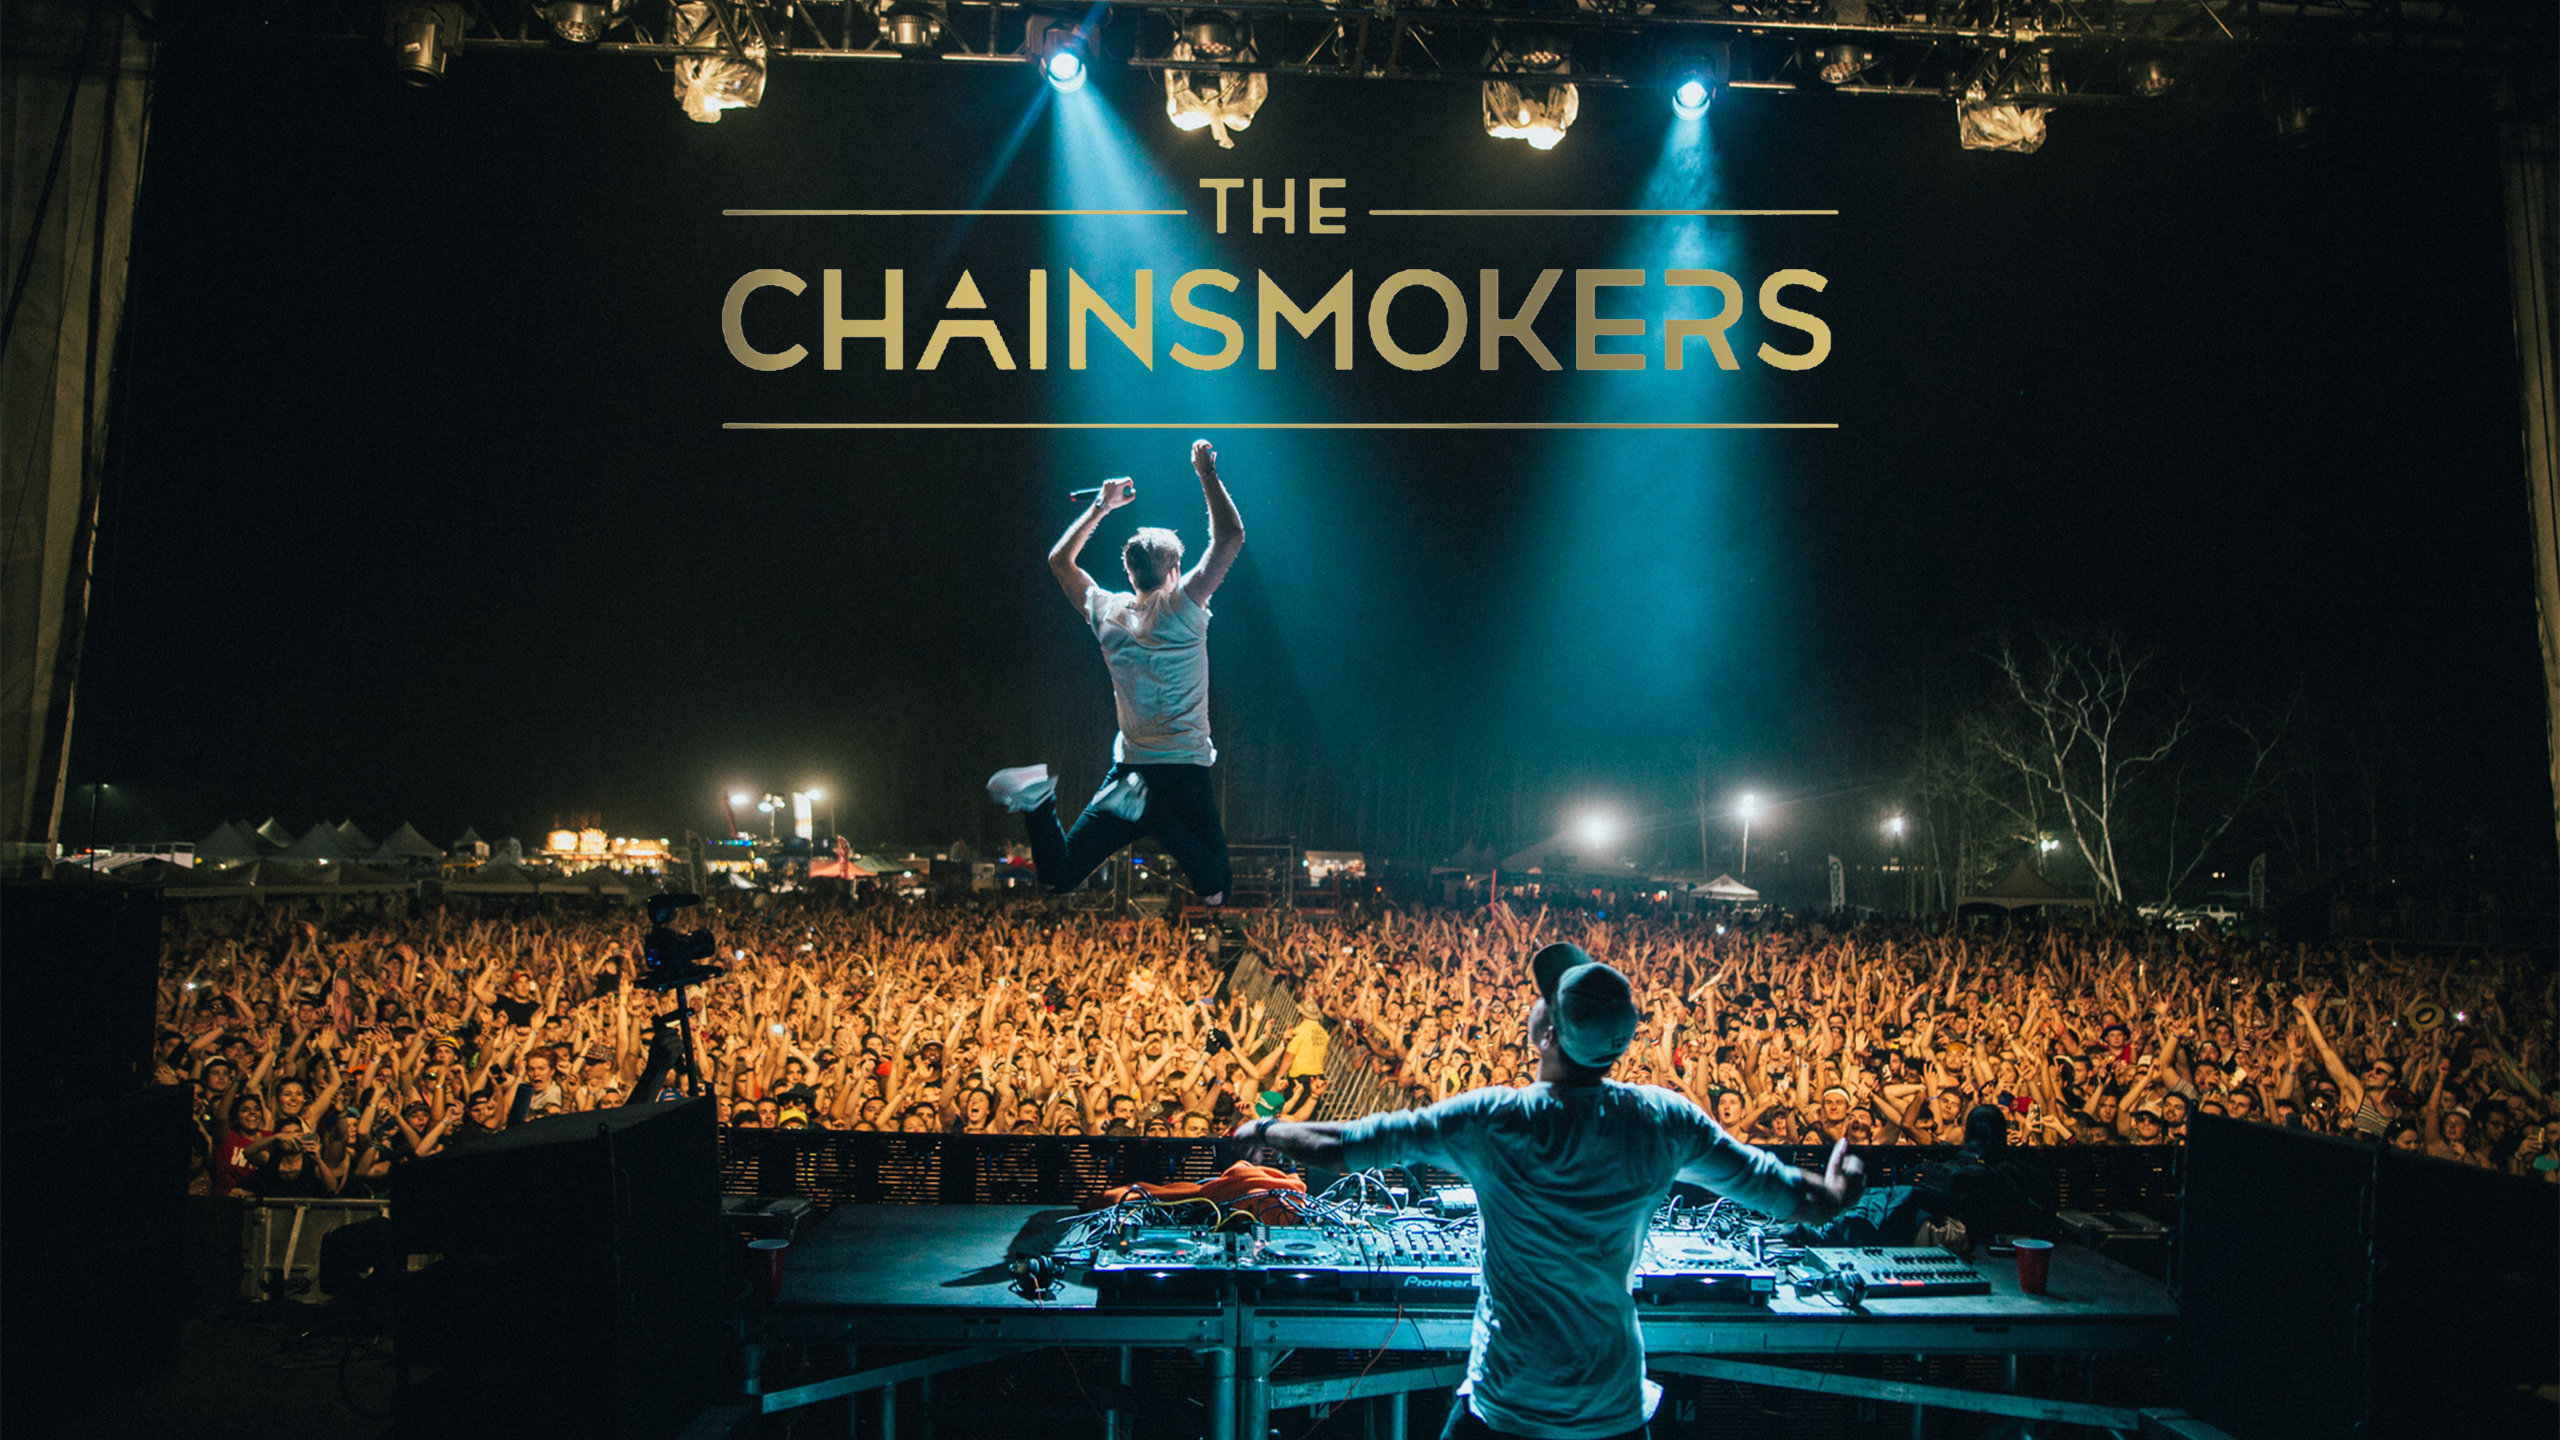 The Chainsmokers Wallpapers and Background Images   stmednet 2560x1440